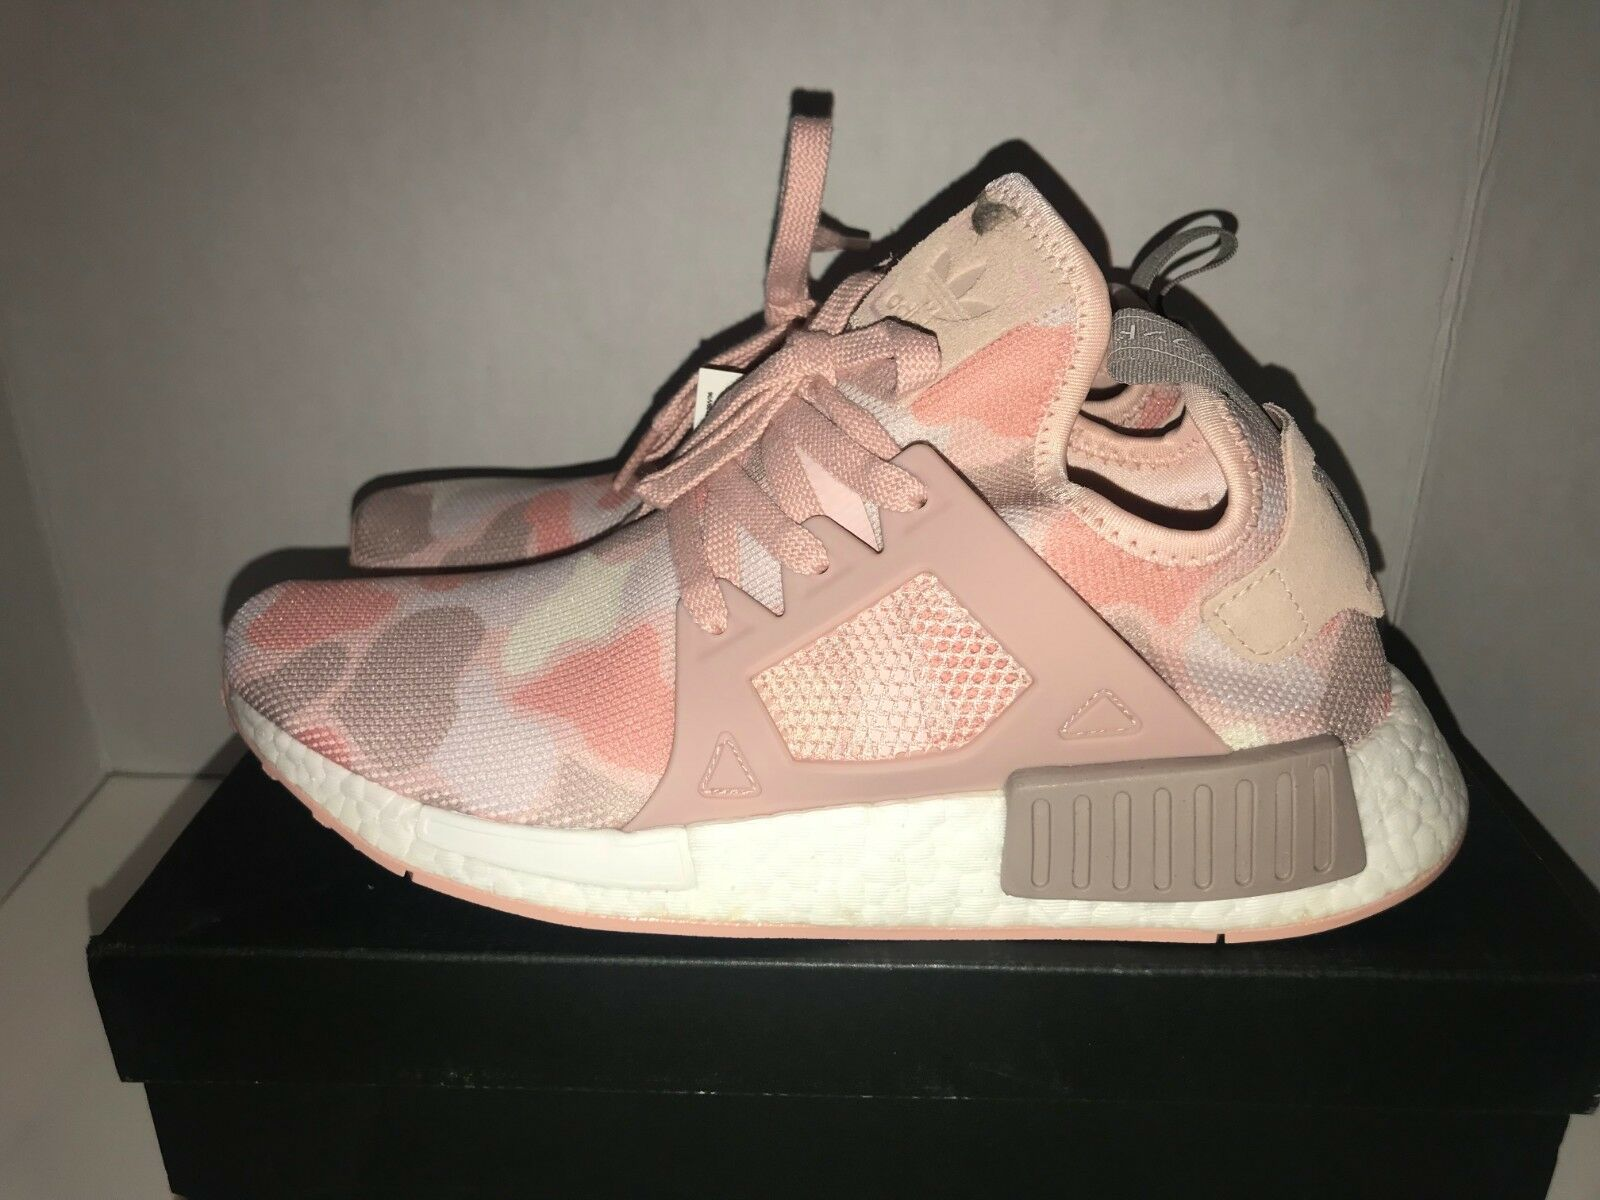 Adidas NMD XR1 Pink Duck Camo Women's Size 8.5